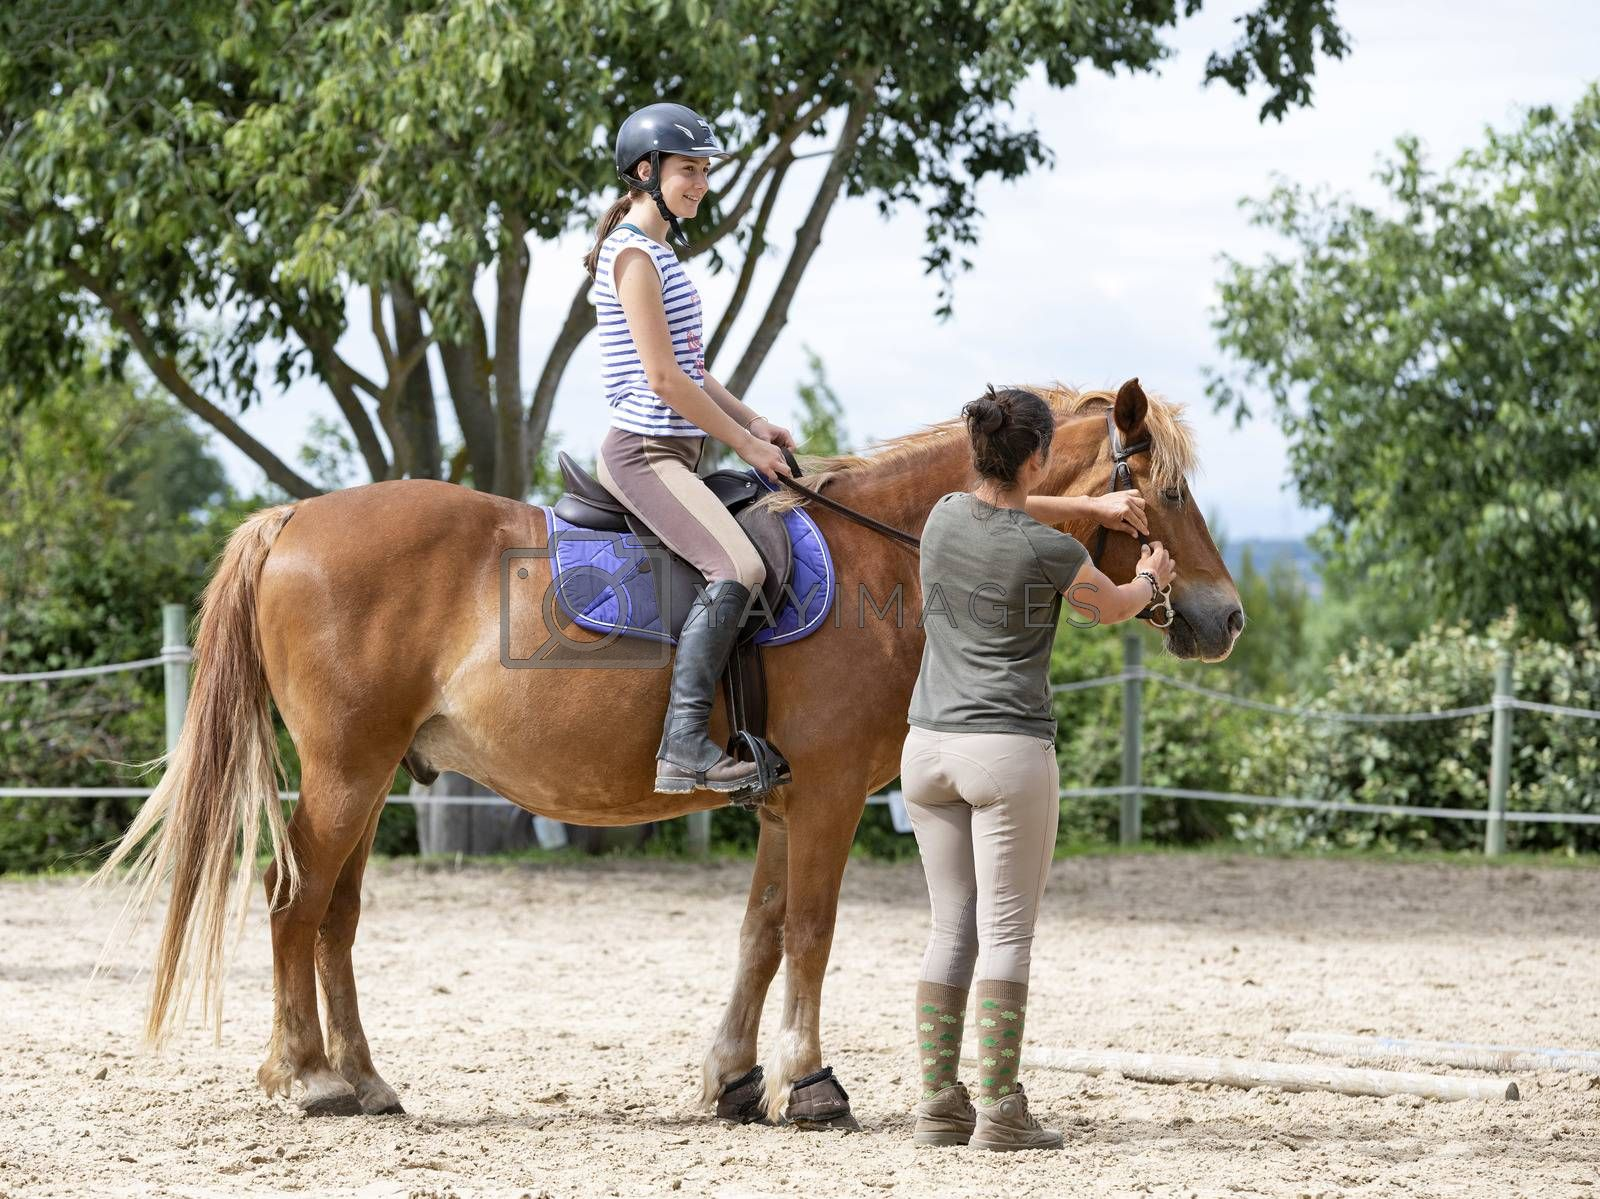 riding girl are training her horse in equestrian center